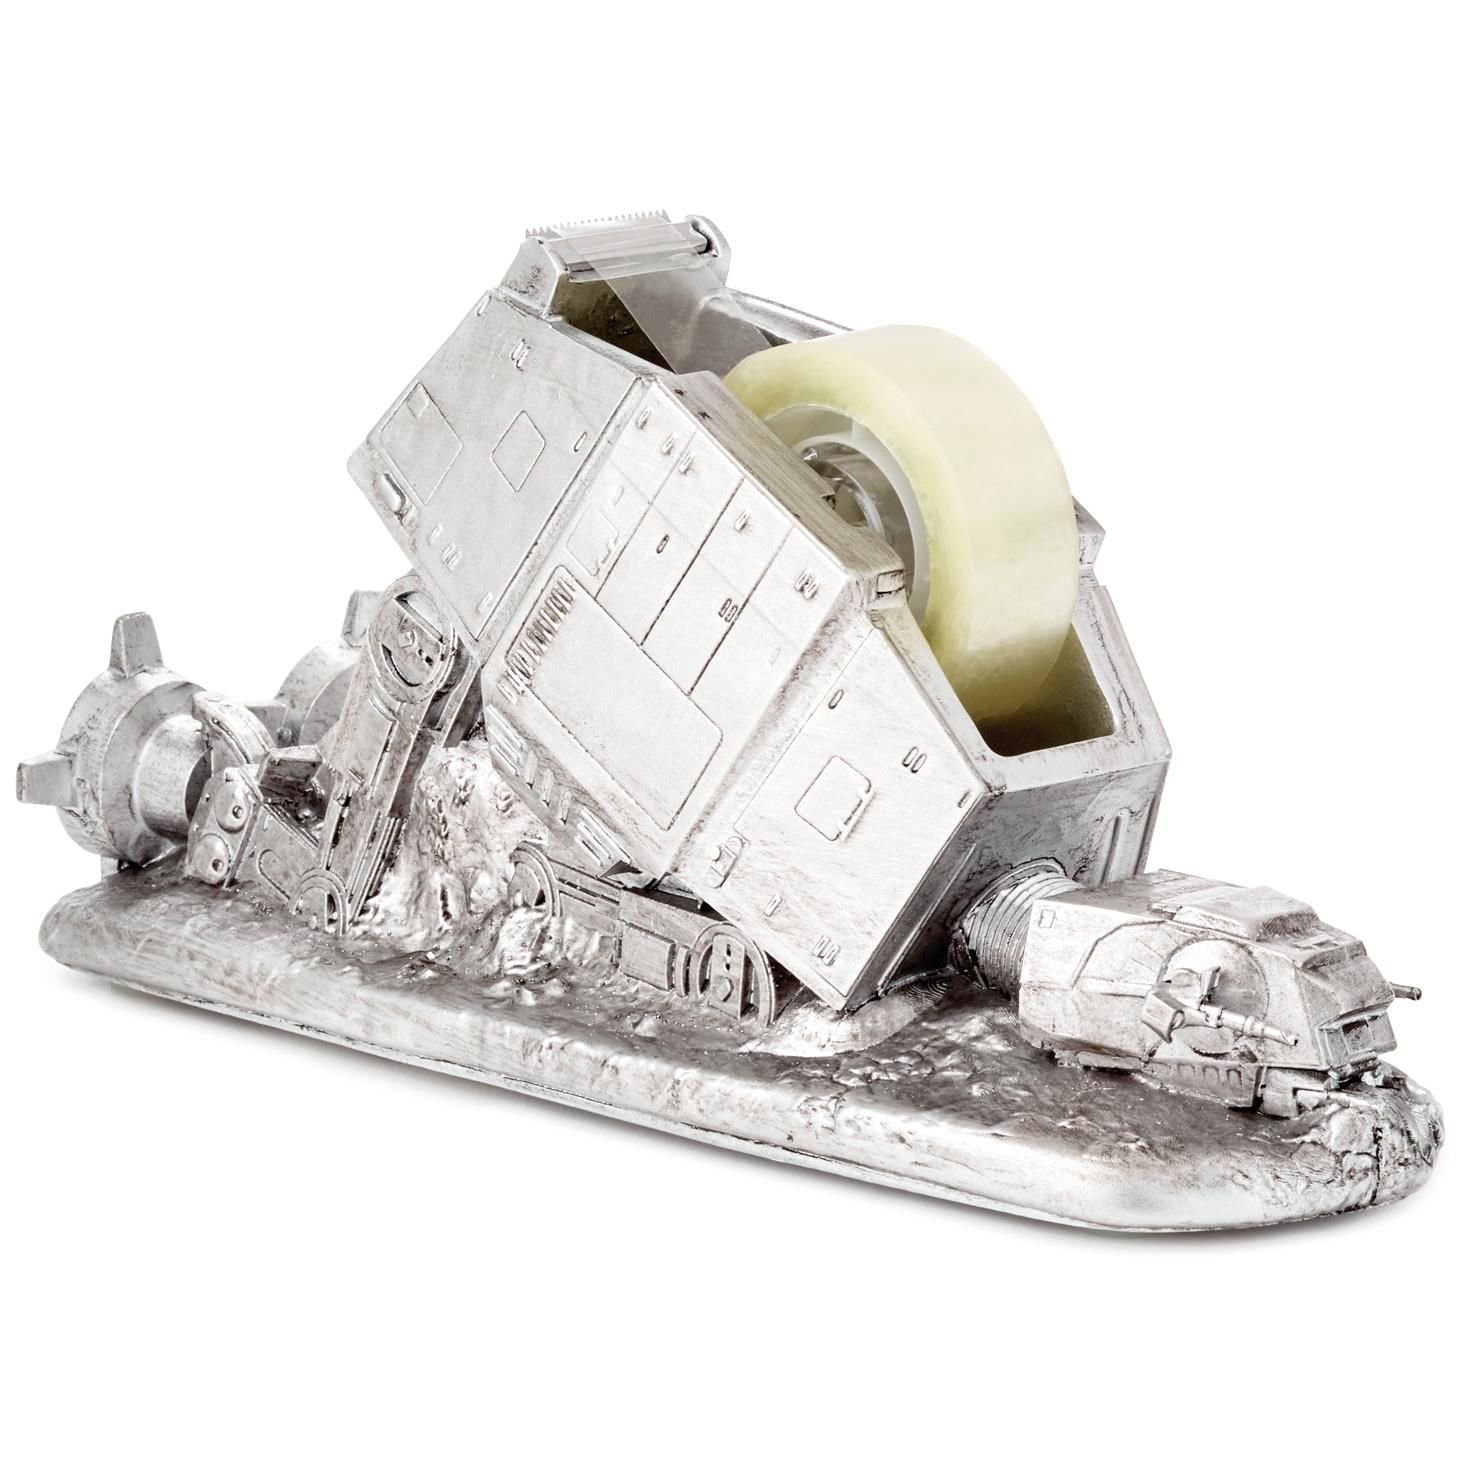 Hallmark Star Wars at-at Tape Dispenser Desk Accessories Movies & TV; Sci-Fi